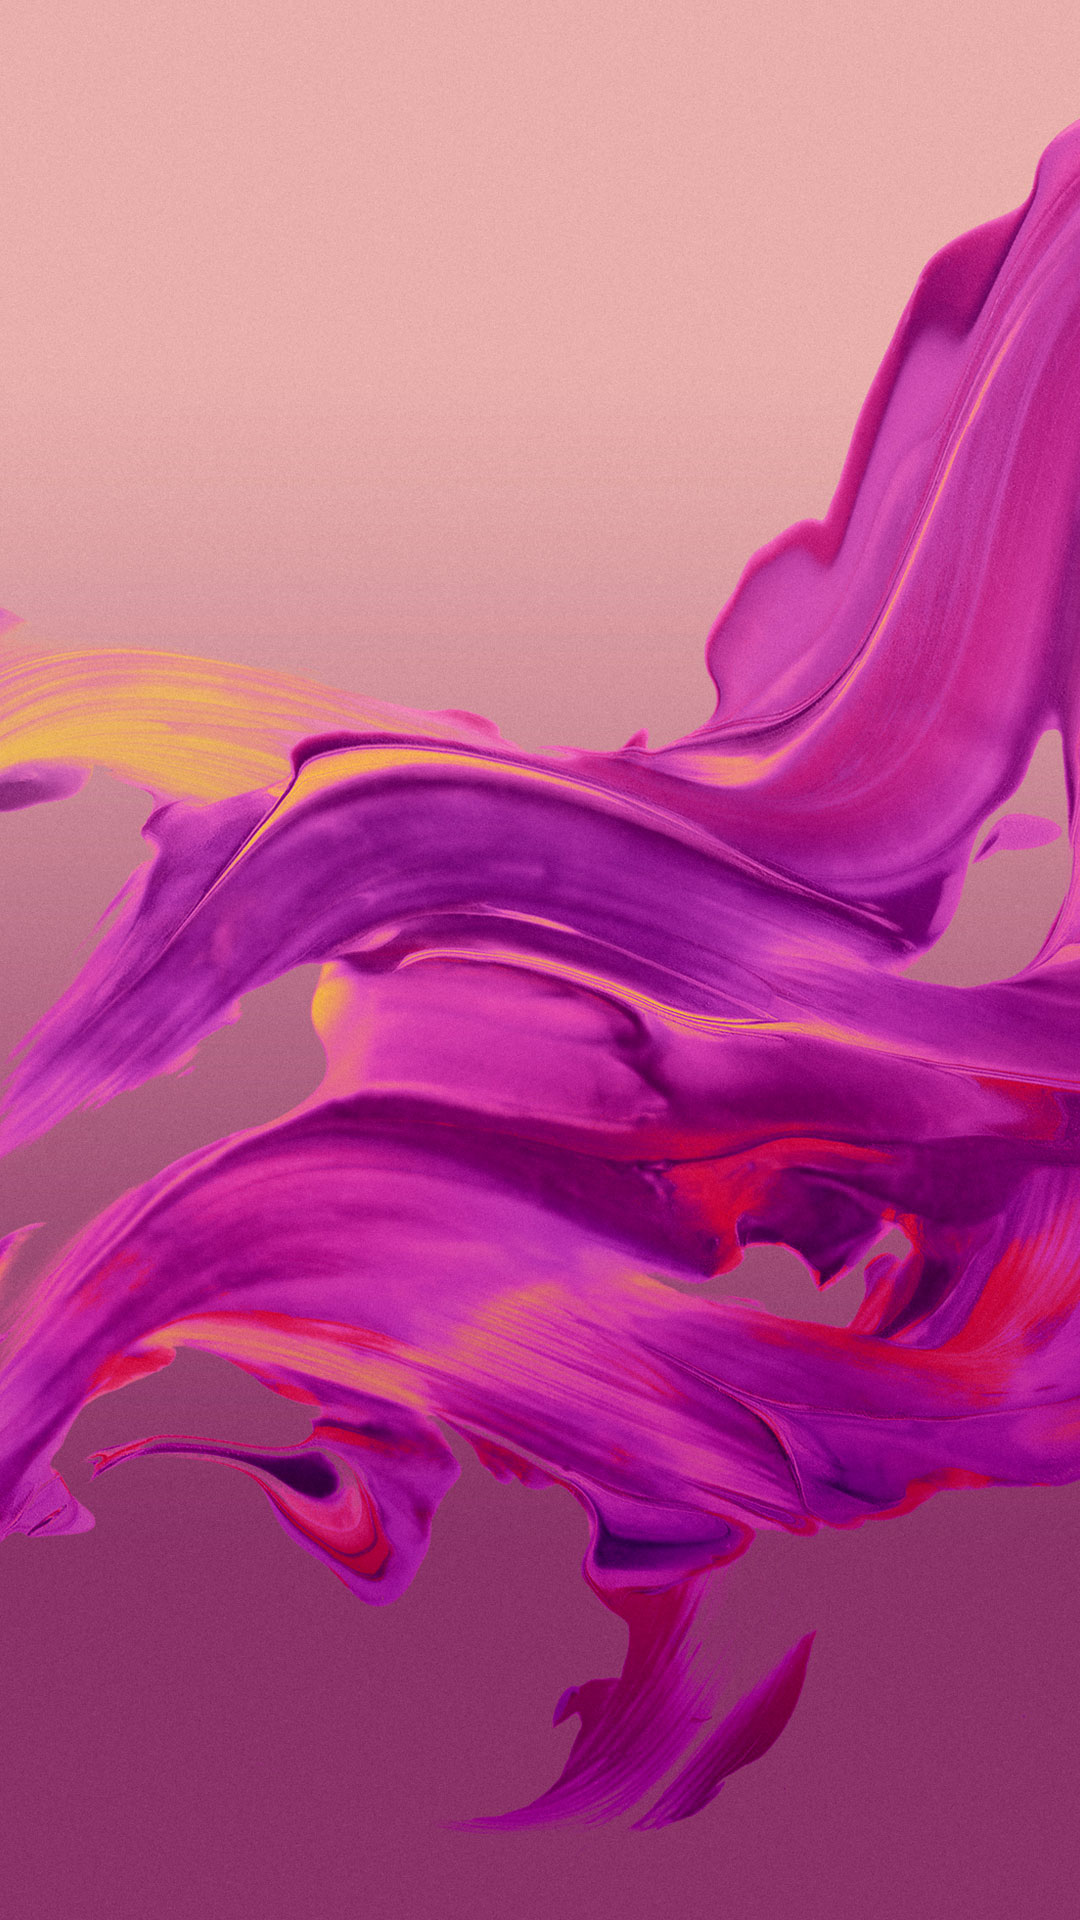 iPhone wallpaper abstract pink Abstract